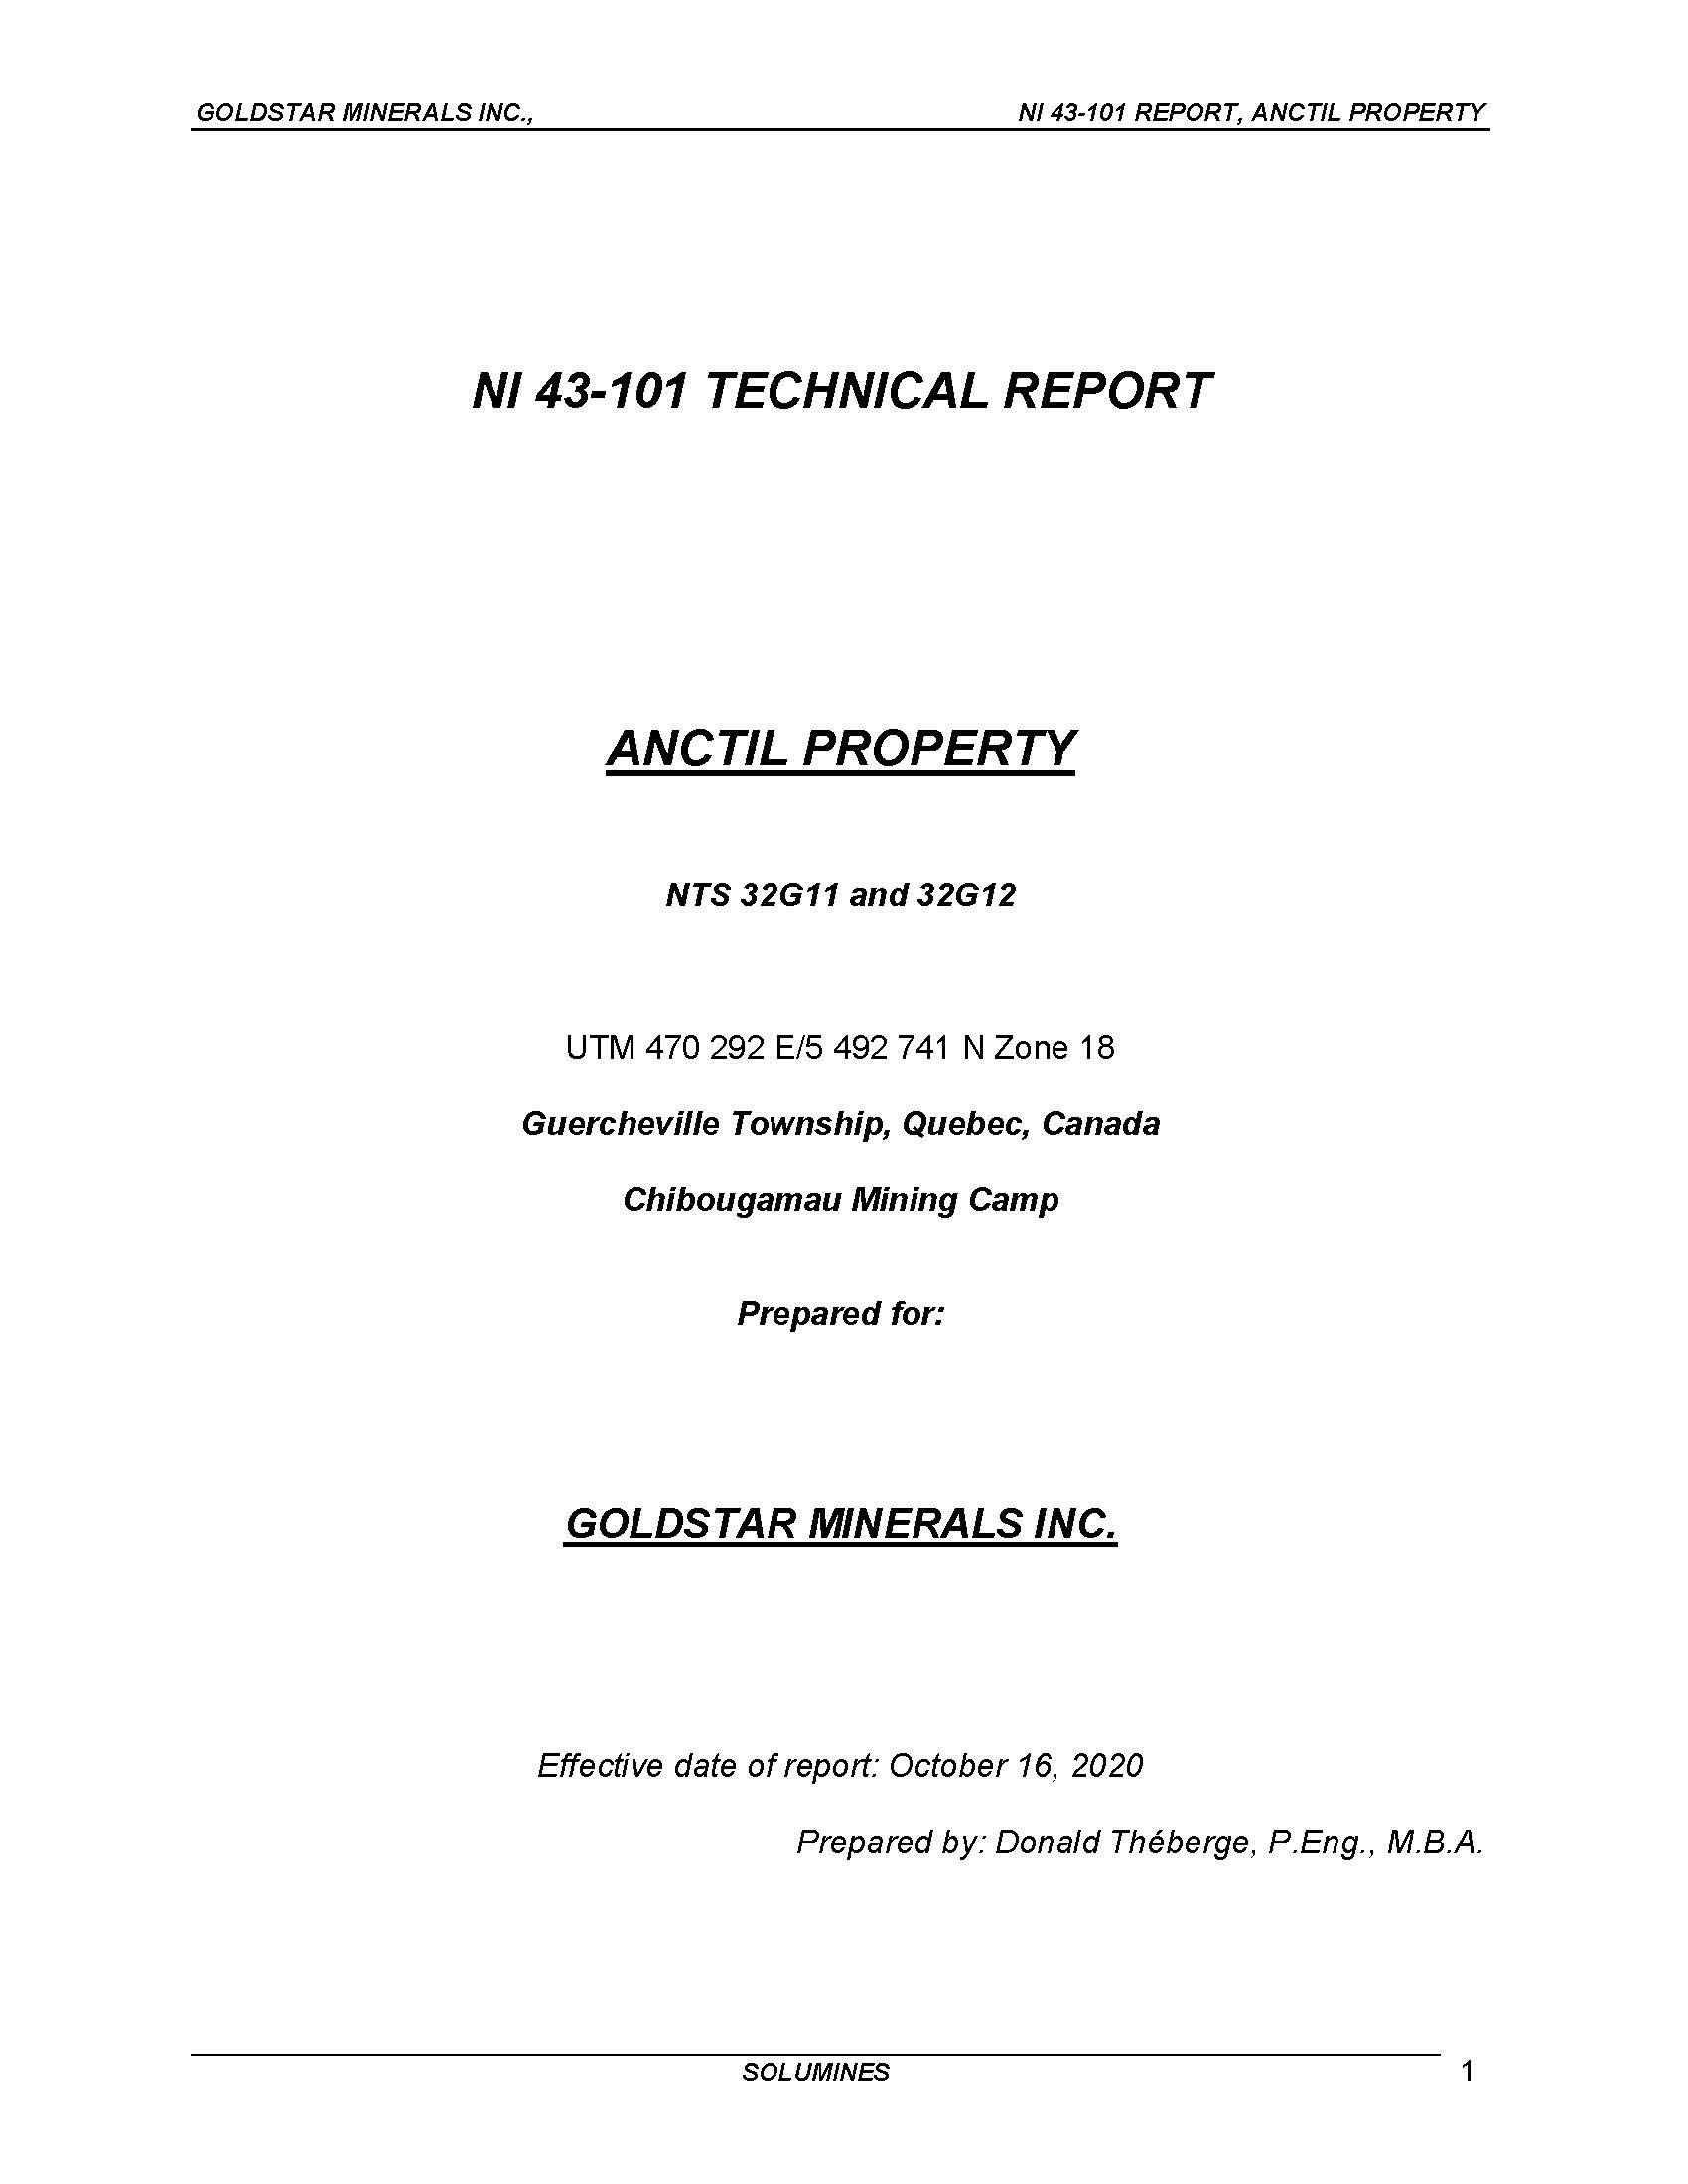 Anctil 43-101 Technical Report